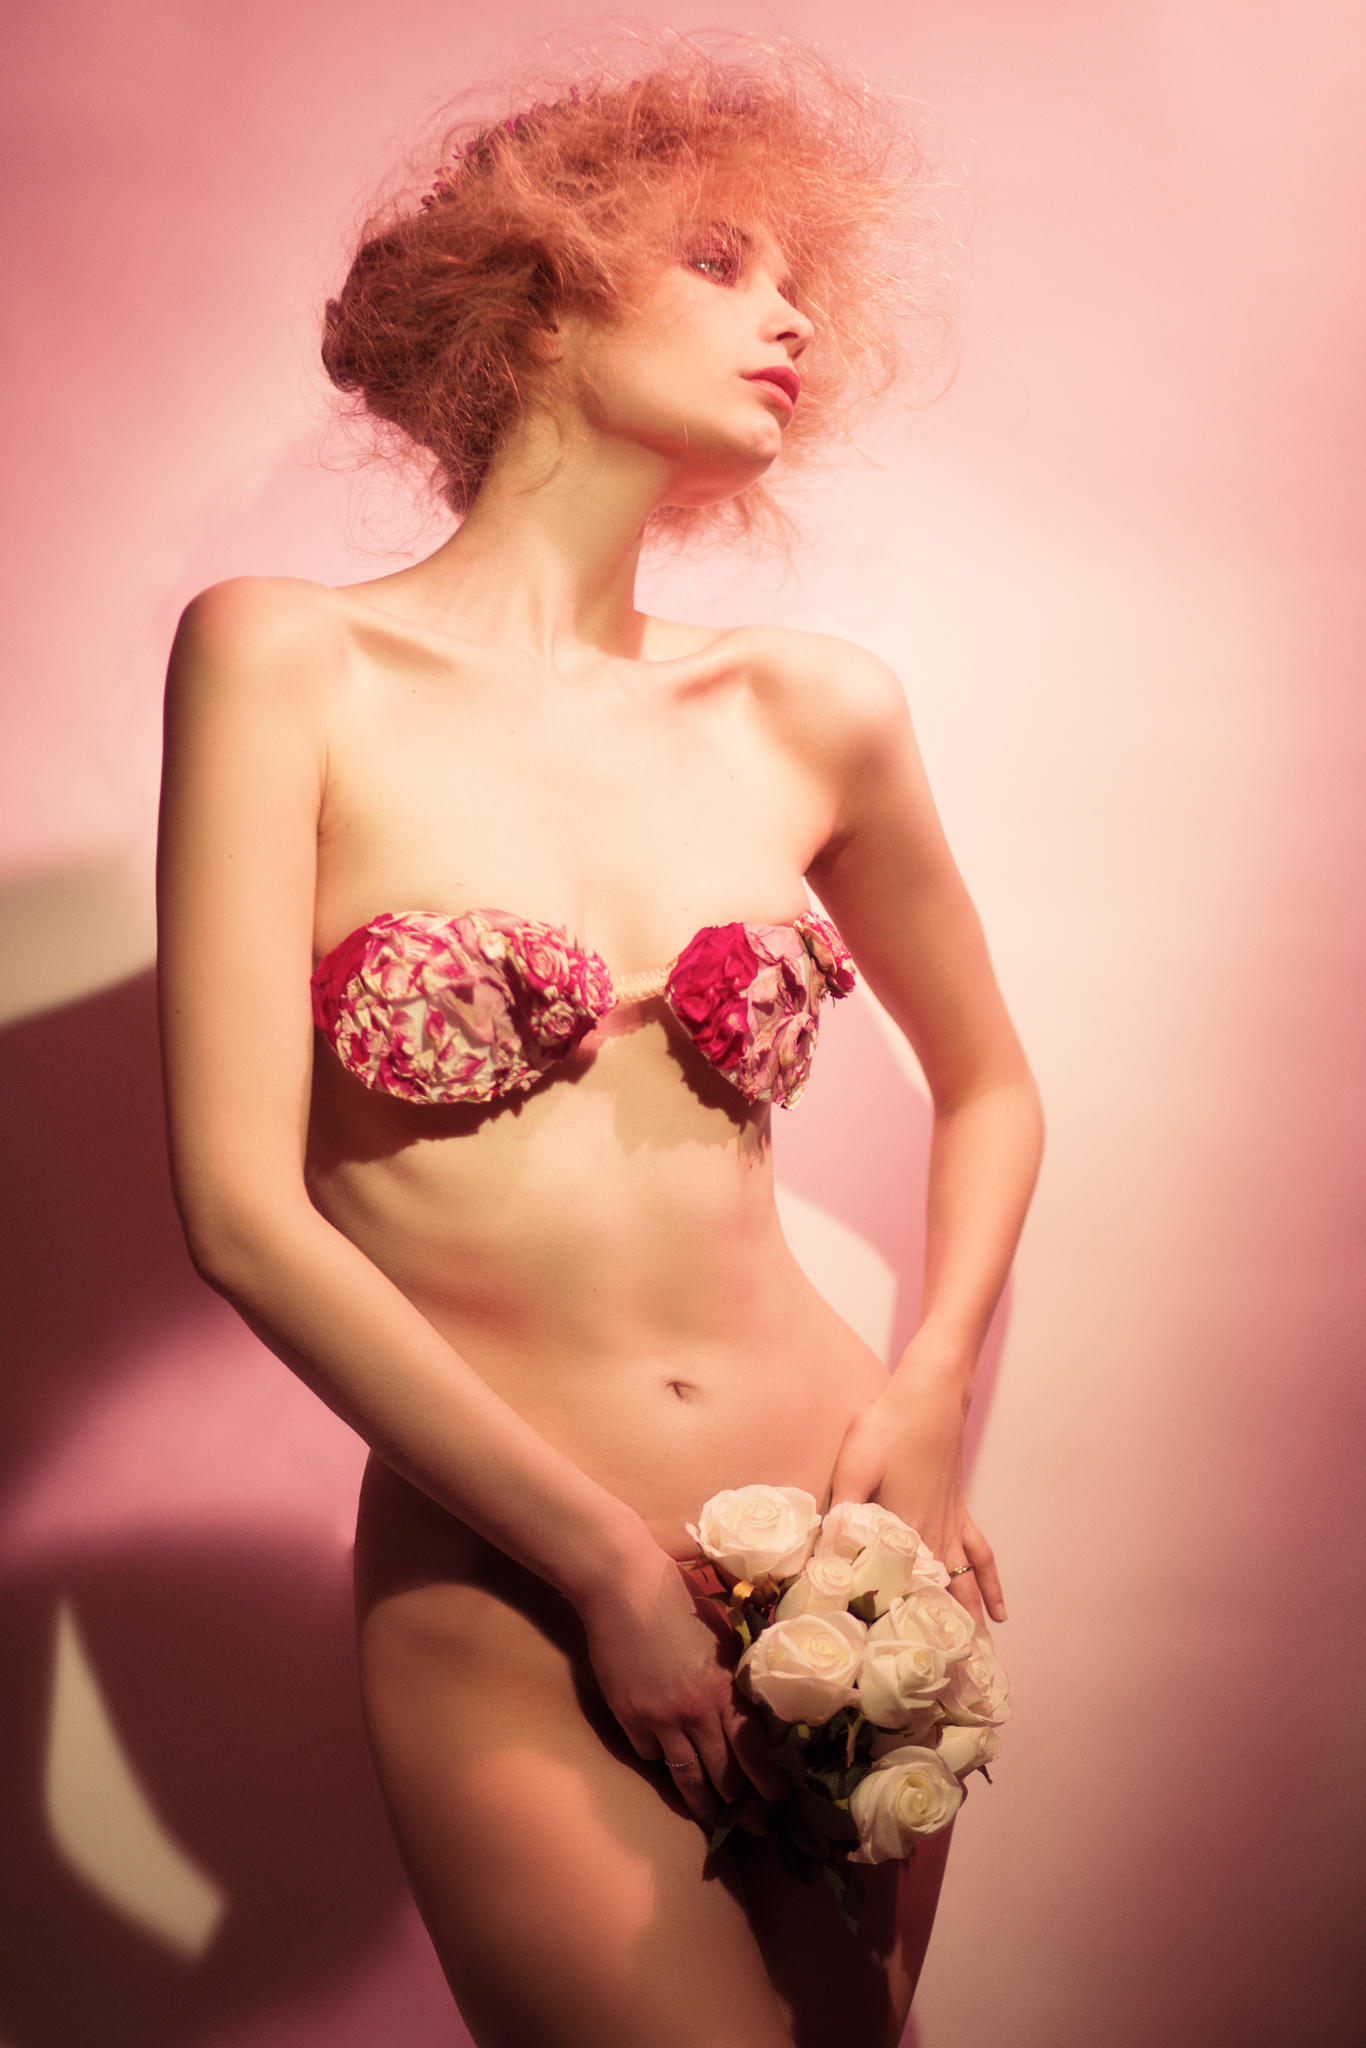 bafff0c5f My French Lingerie  12 lingerie gift ideas! - www.MyFrenchLife.org